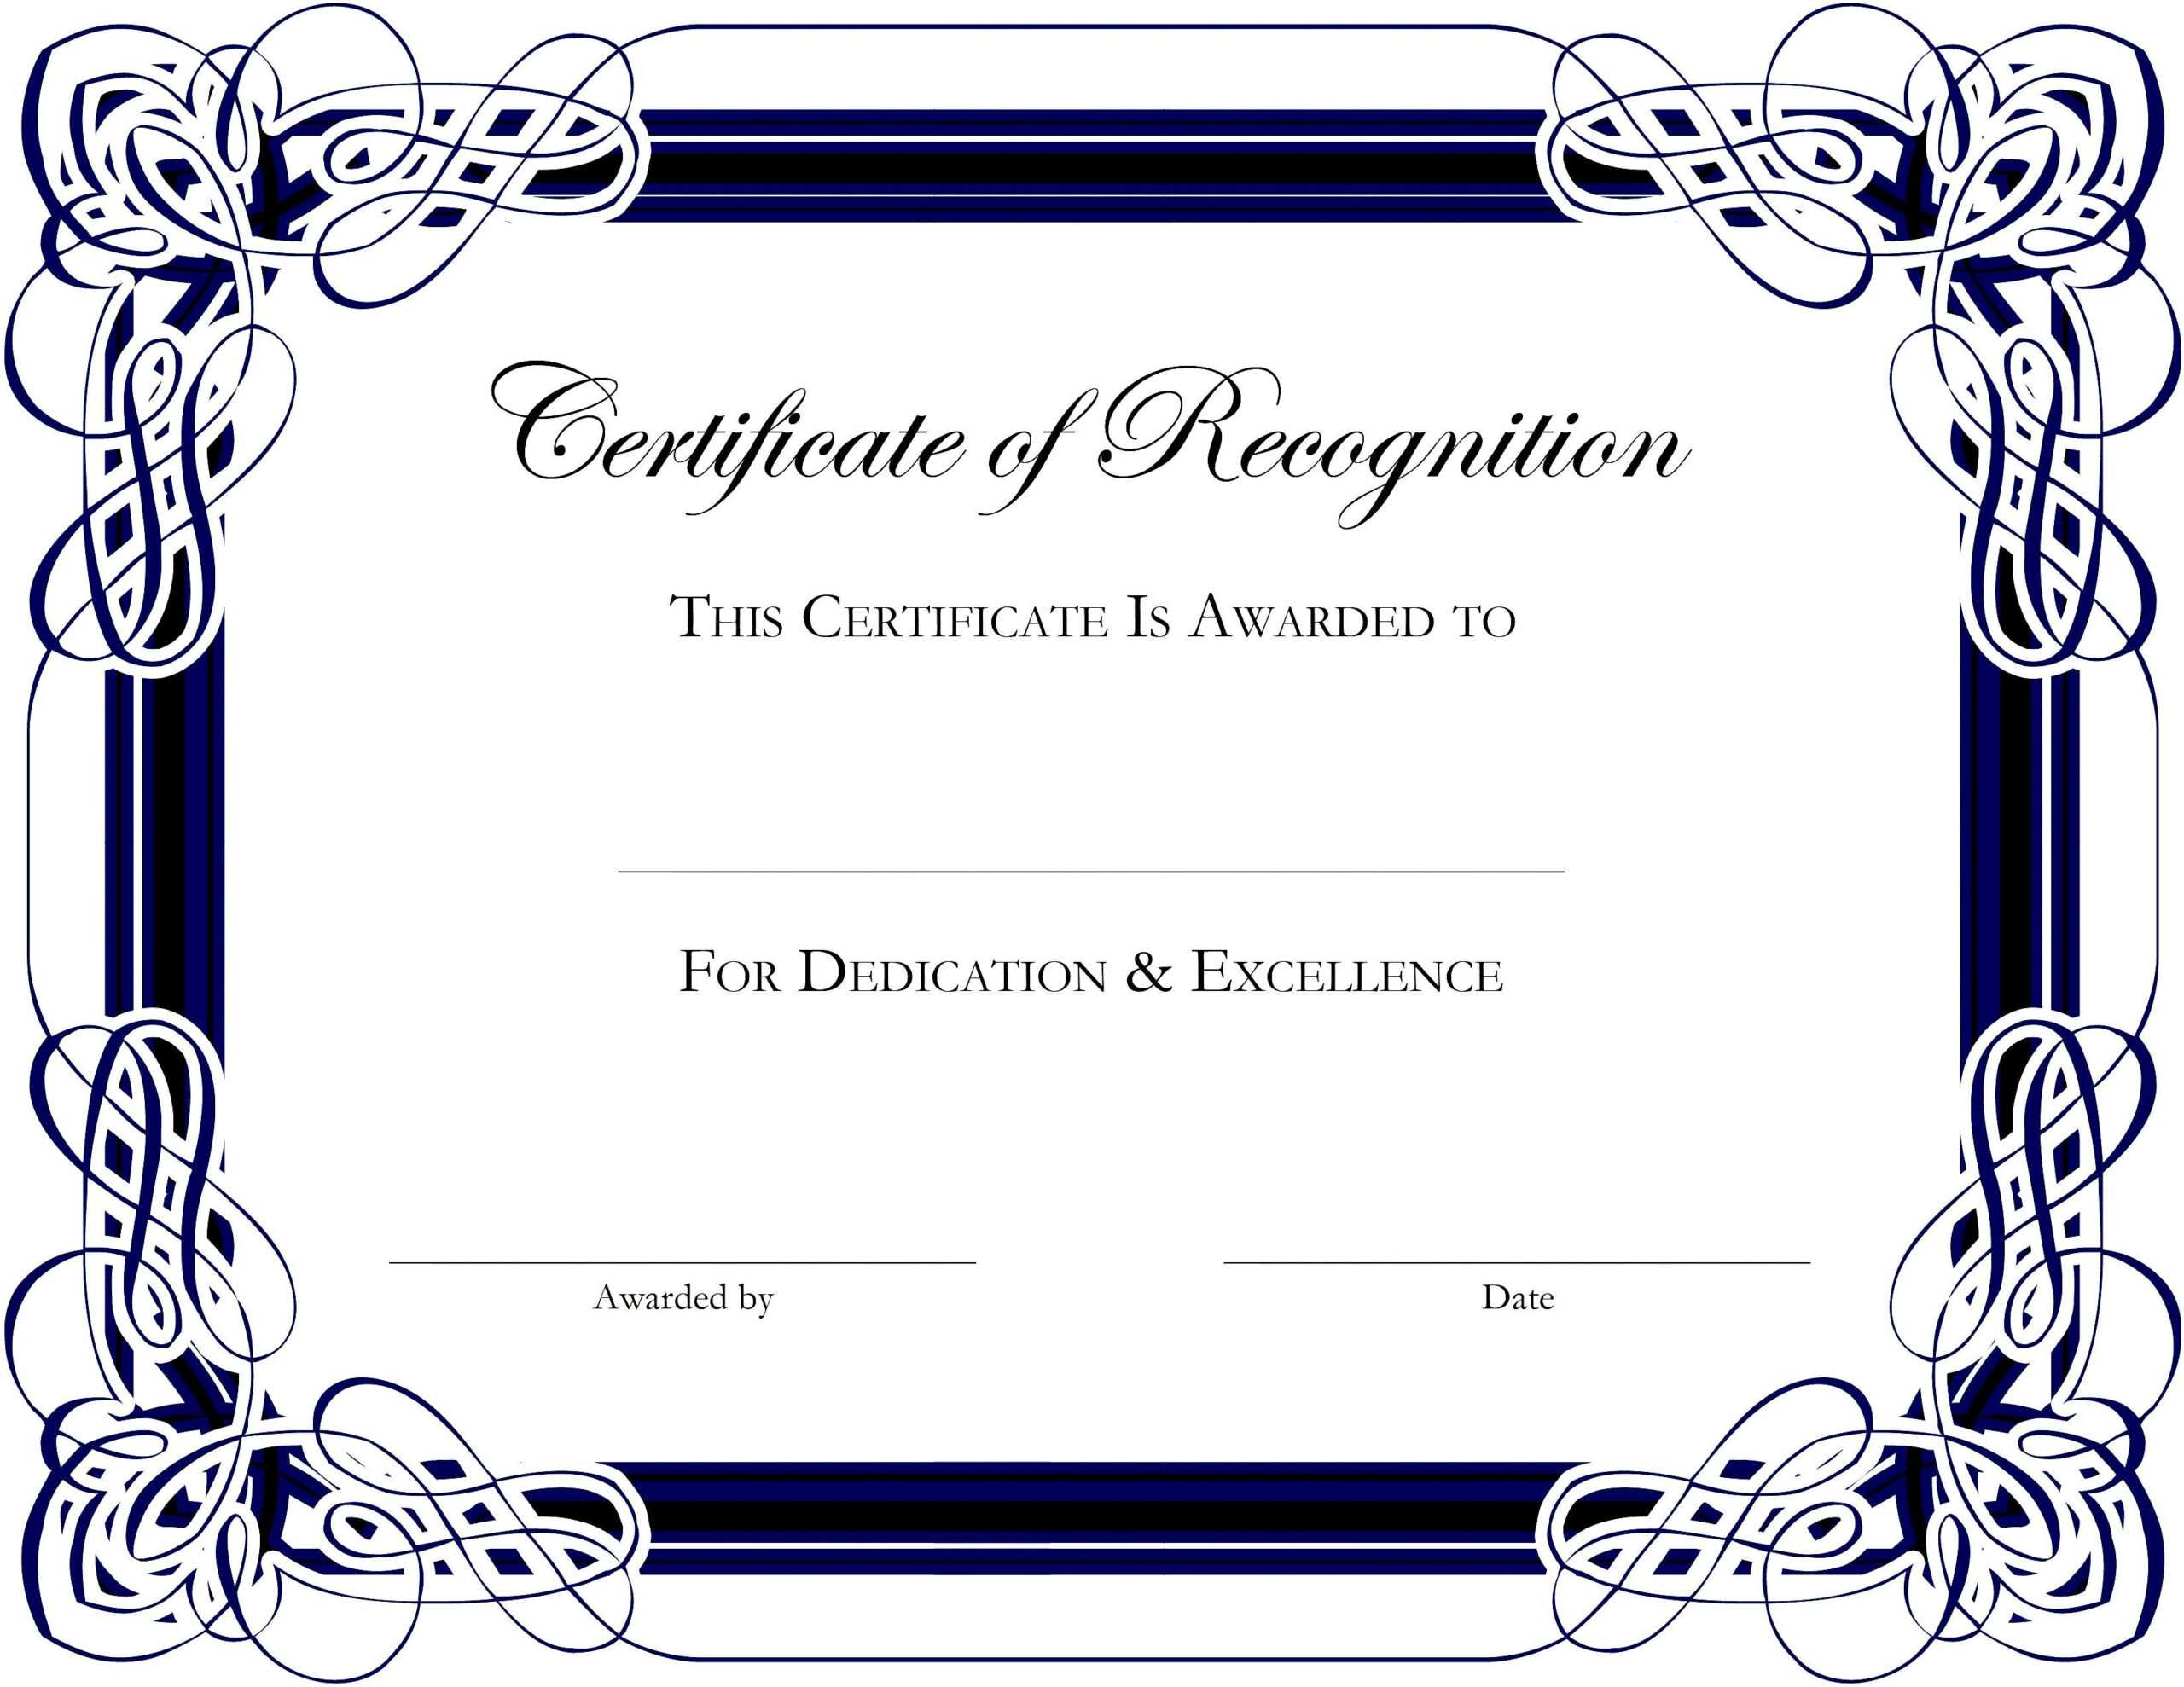 Award Templates For Microsoft Publisher   Besttemplate123 Throughout Anniversary Certificate Template Free